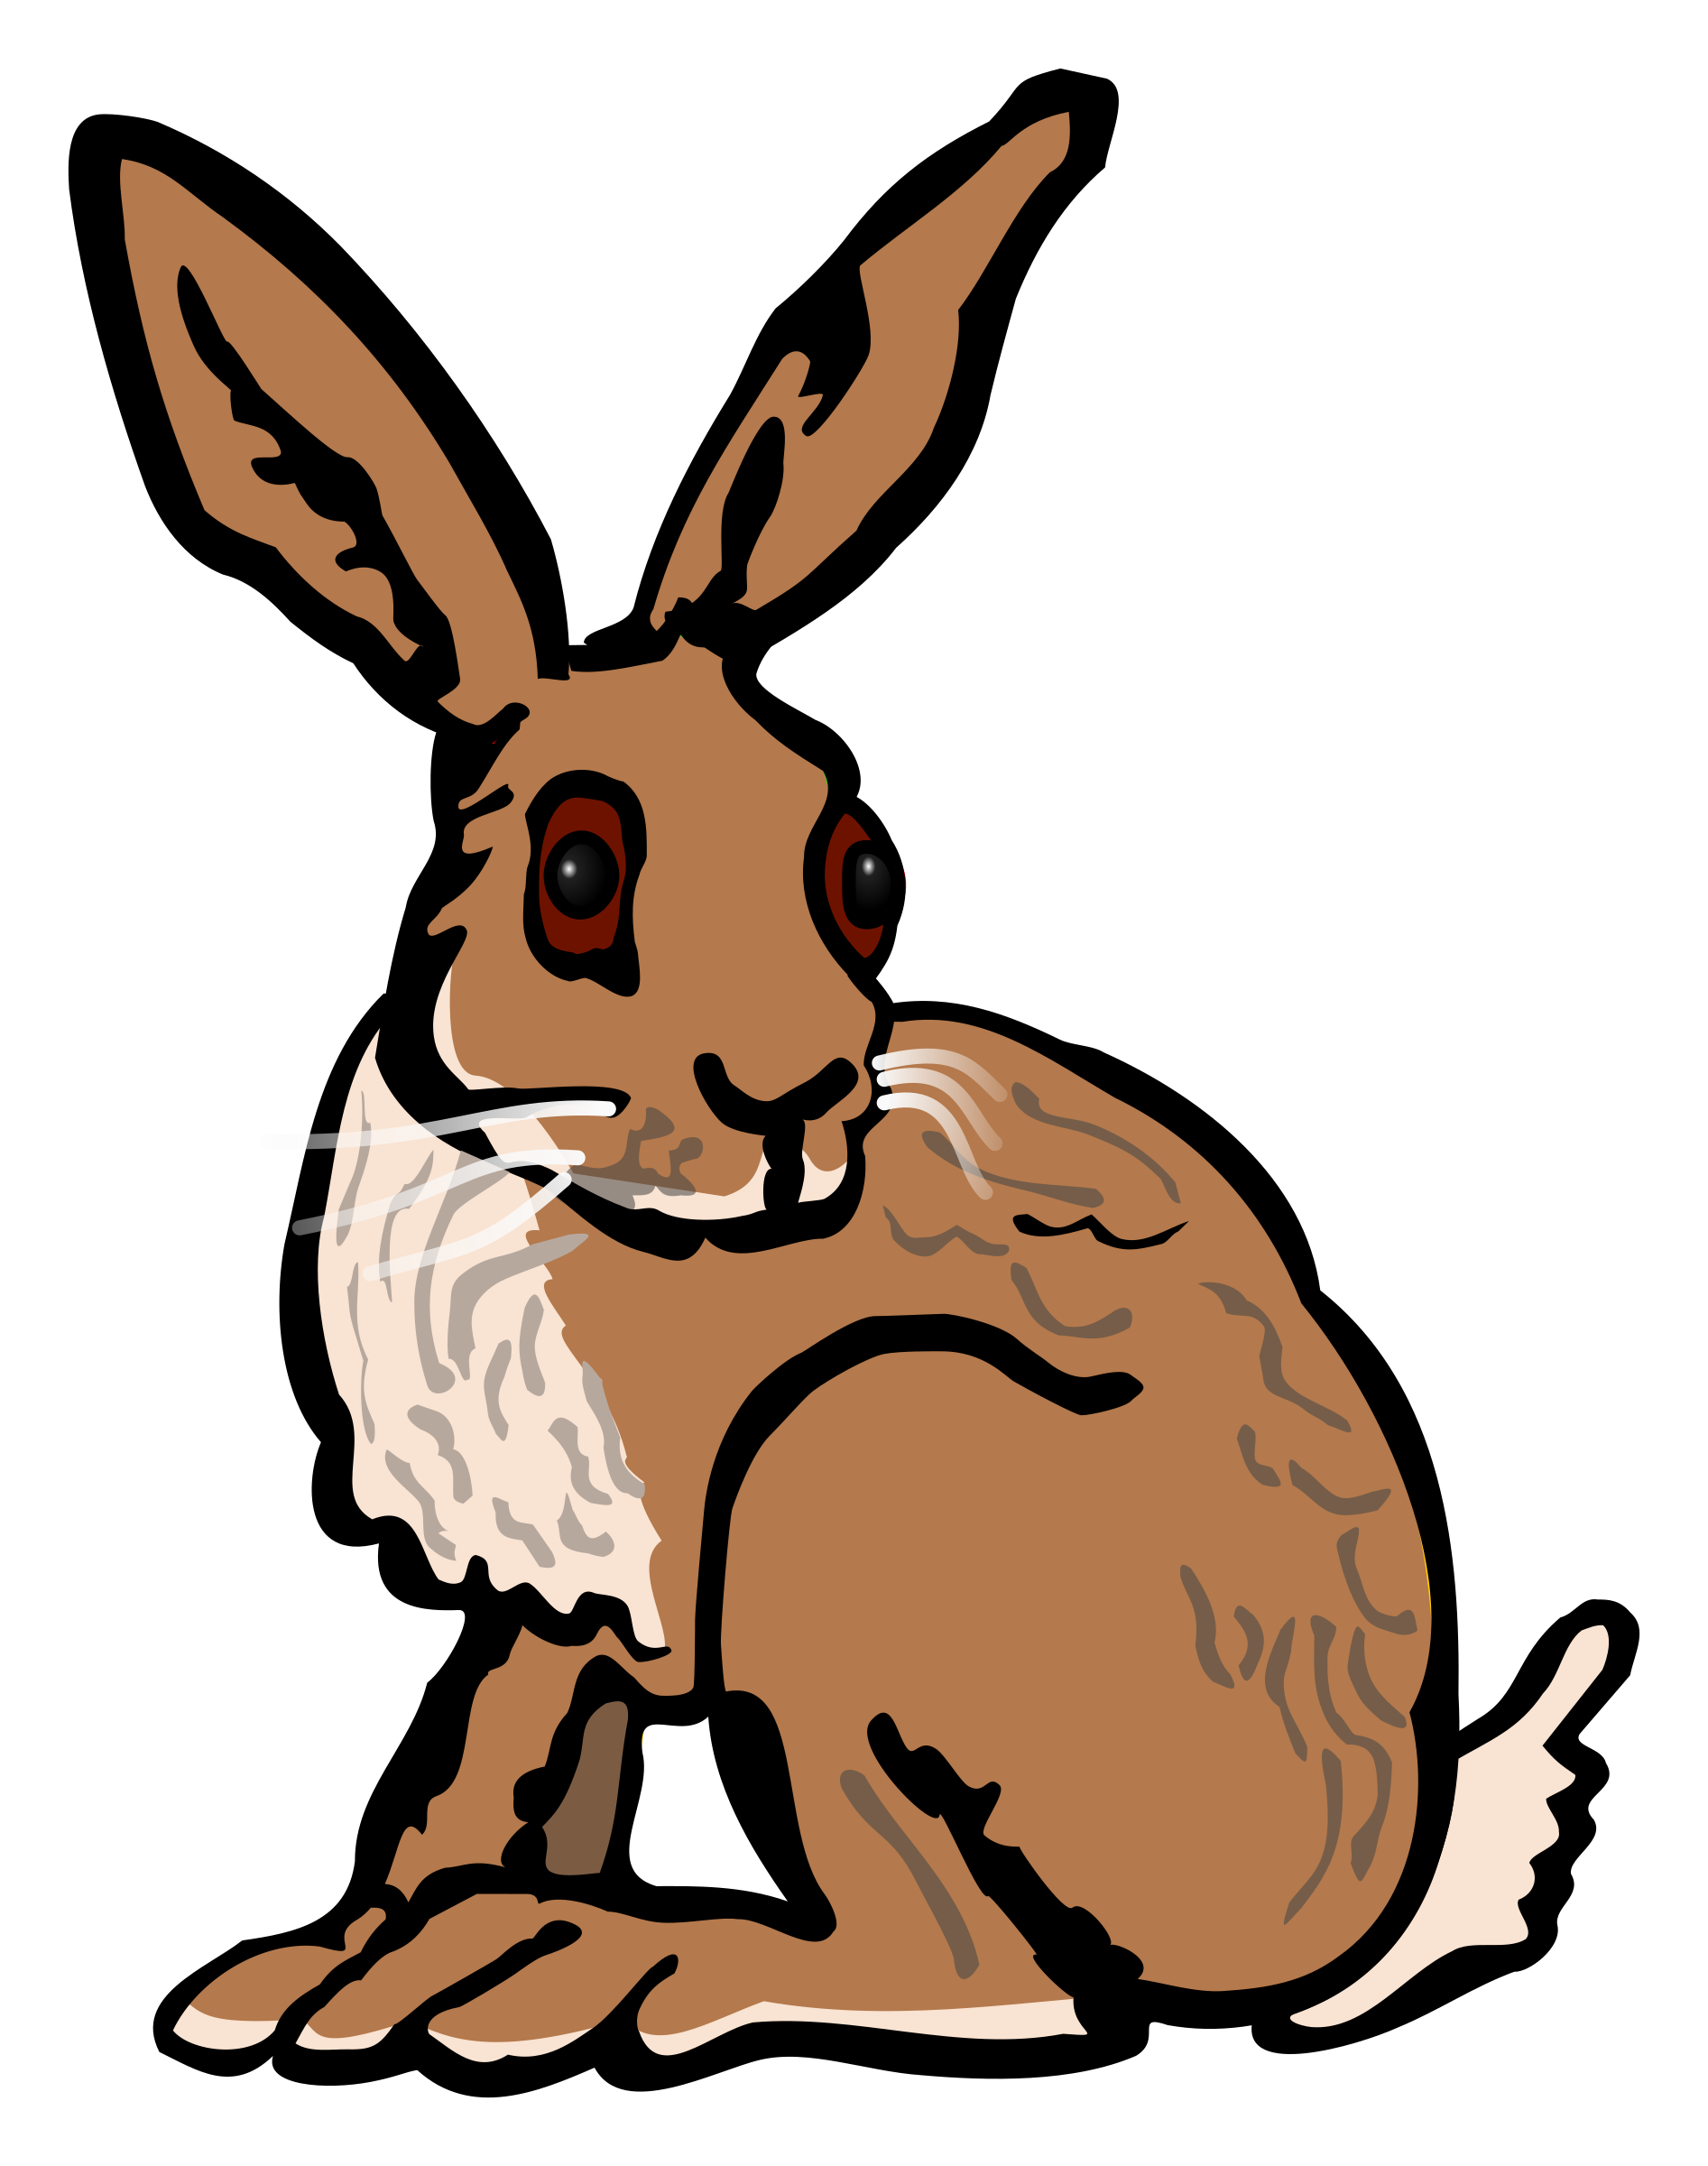 Hare clipart Hare #9 Hare drawings clipart